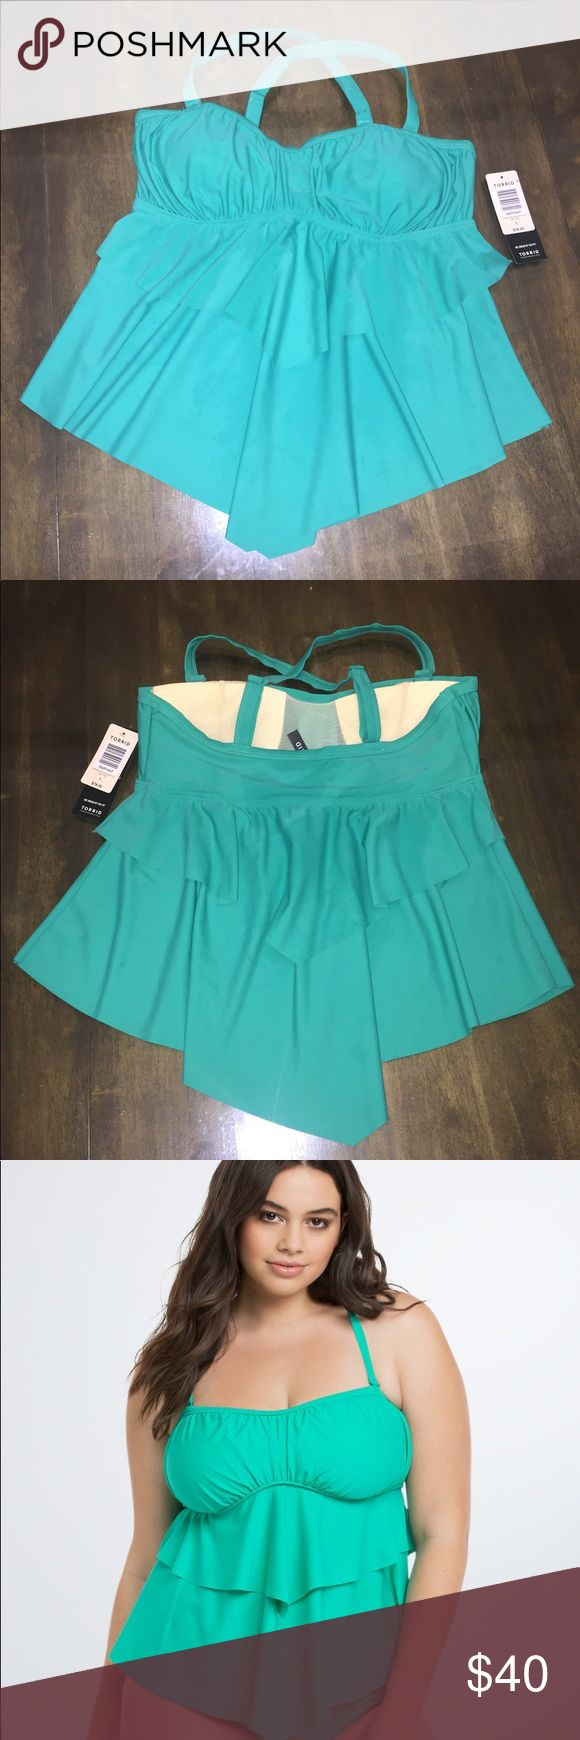 Torrid flounce tankini top Bali green flounce tankini top. Adjustable, multiway straps, built in soft cups. Brand new with tags attached. Size 0 in torrid equals size 12. torrid Swim Bikinis